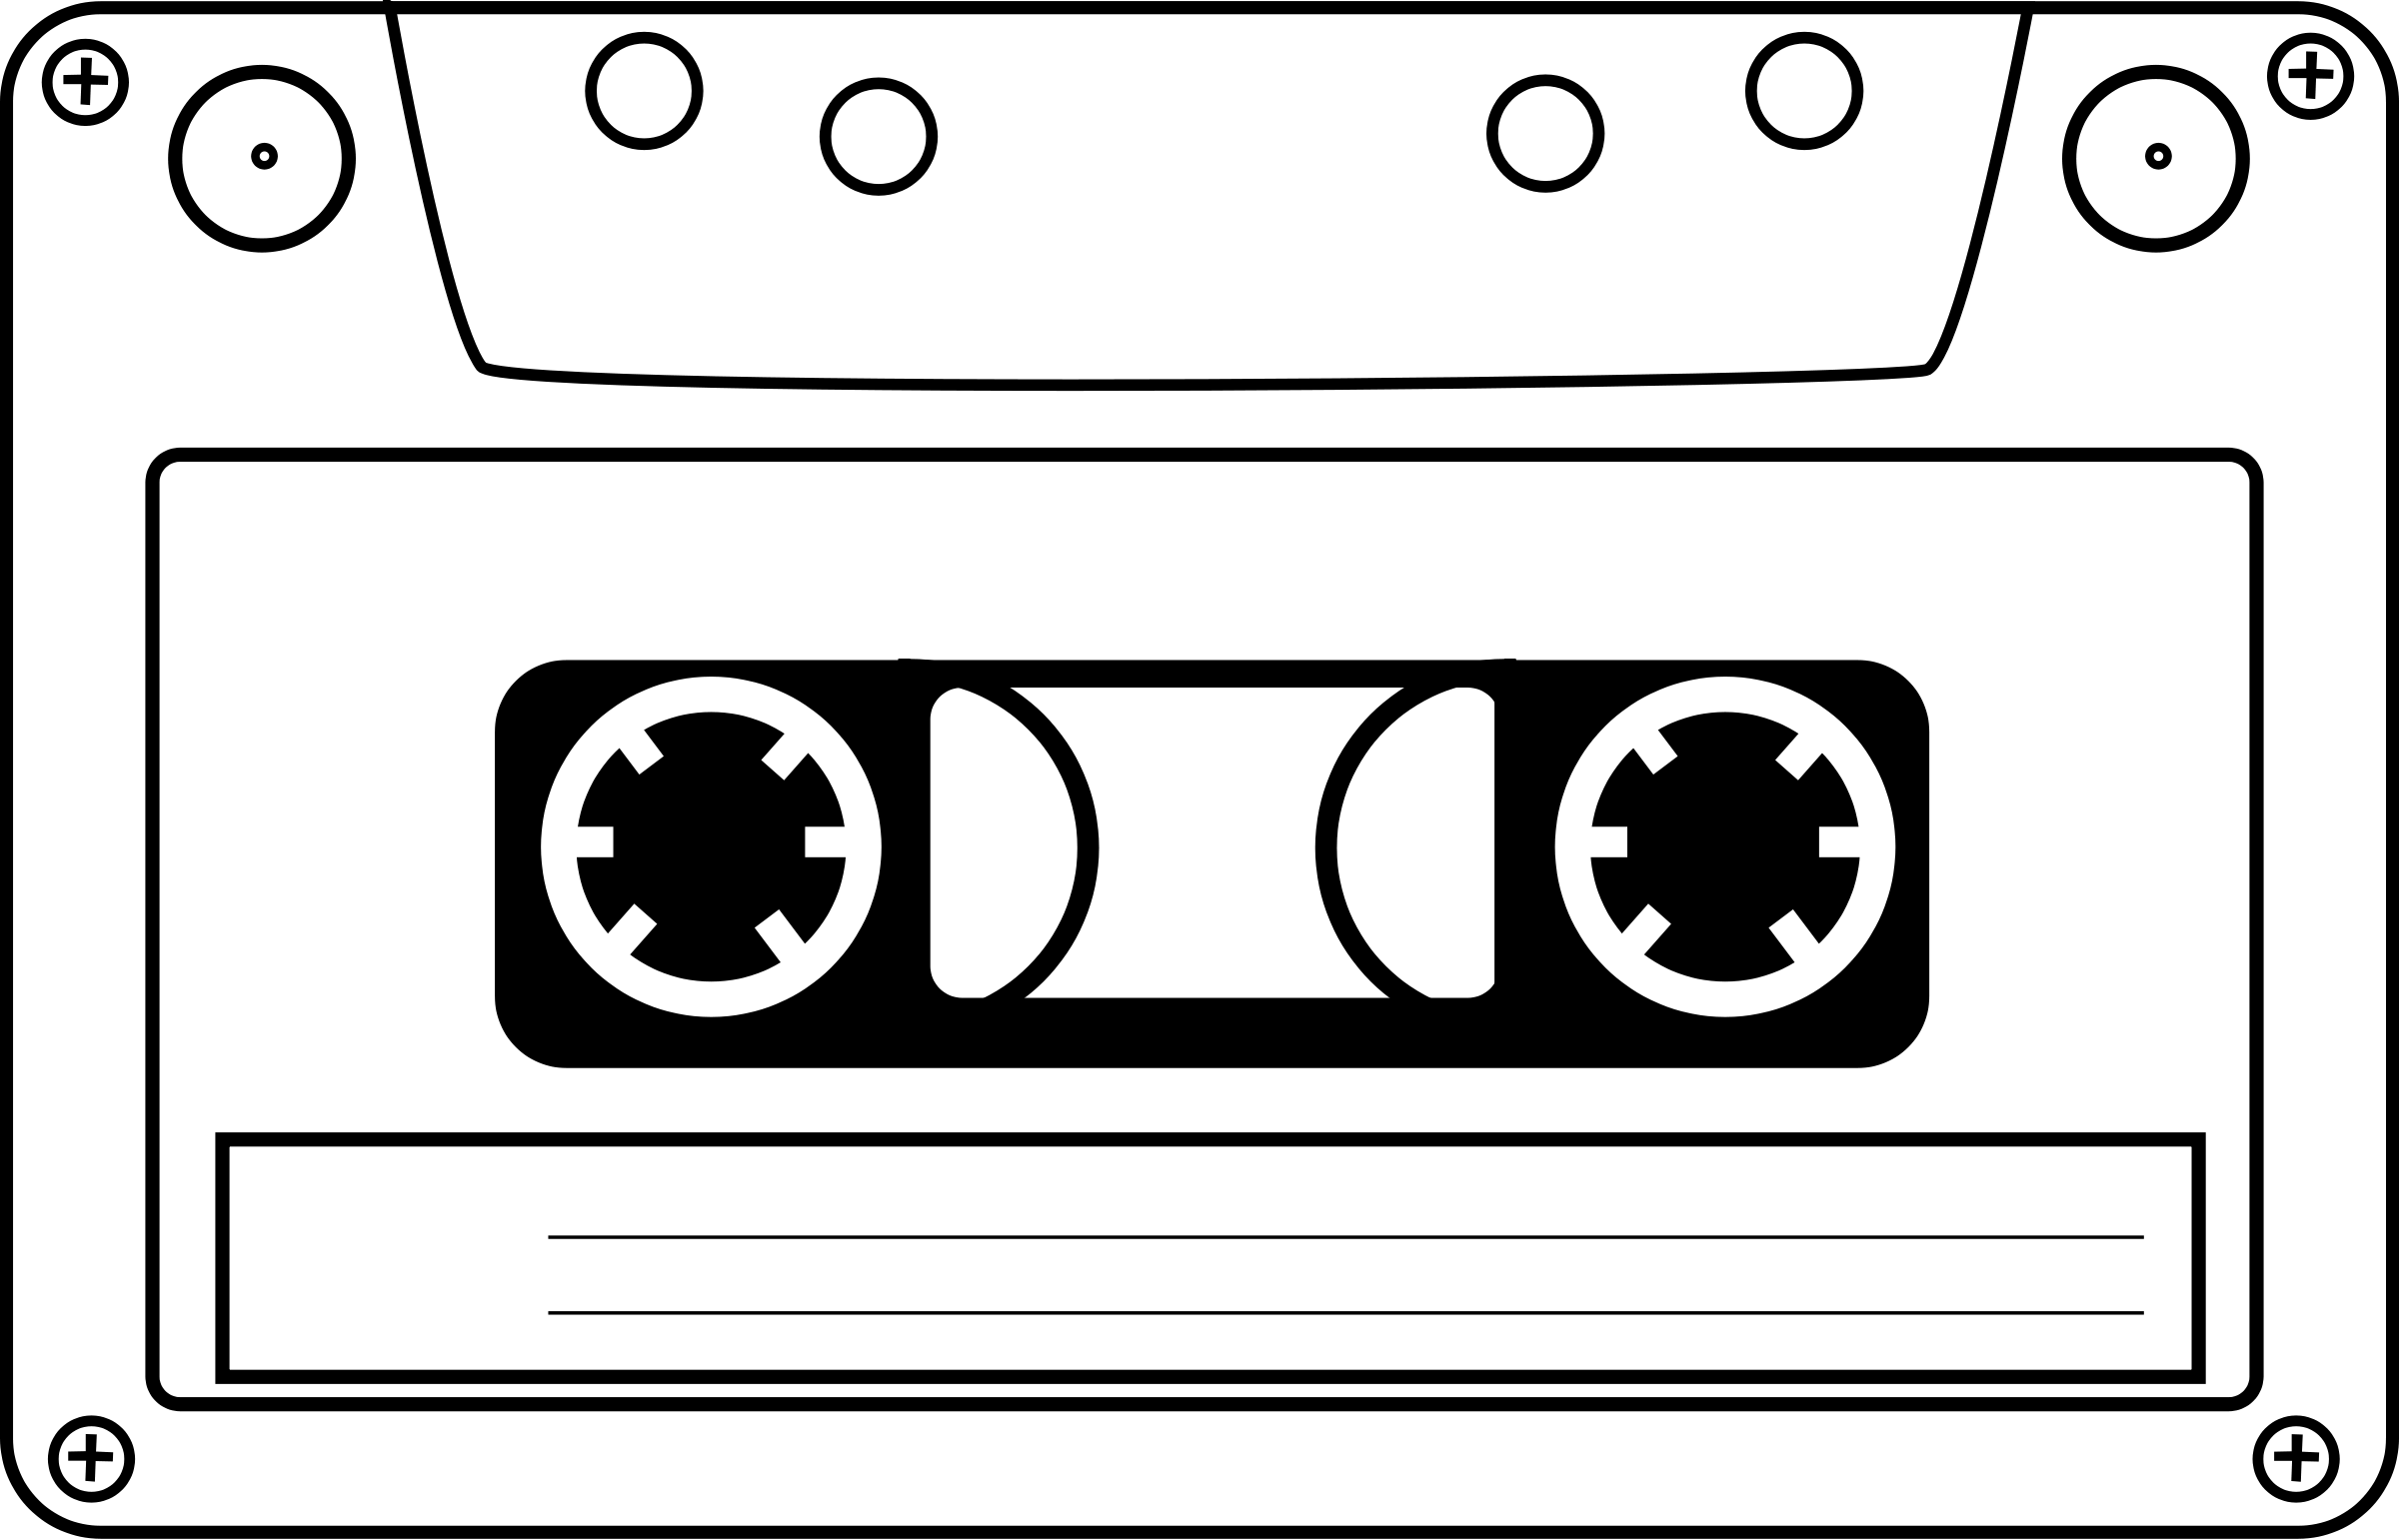 Cassette tape images clipart clipart transparent download Free Cassette Cliparts, Download Free Clip Art, Free Clip Art on ... clipart transparent download